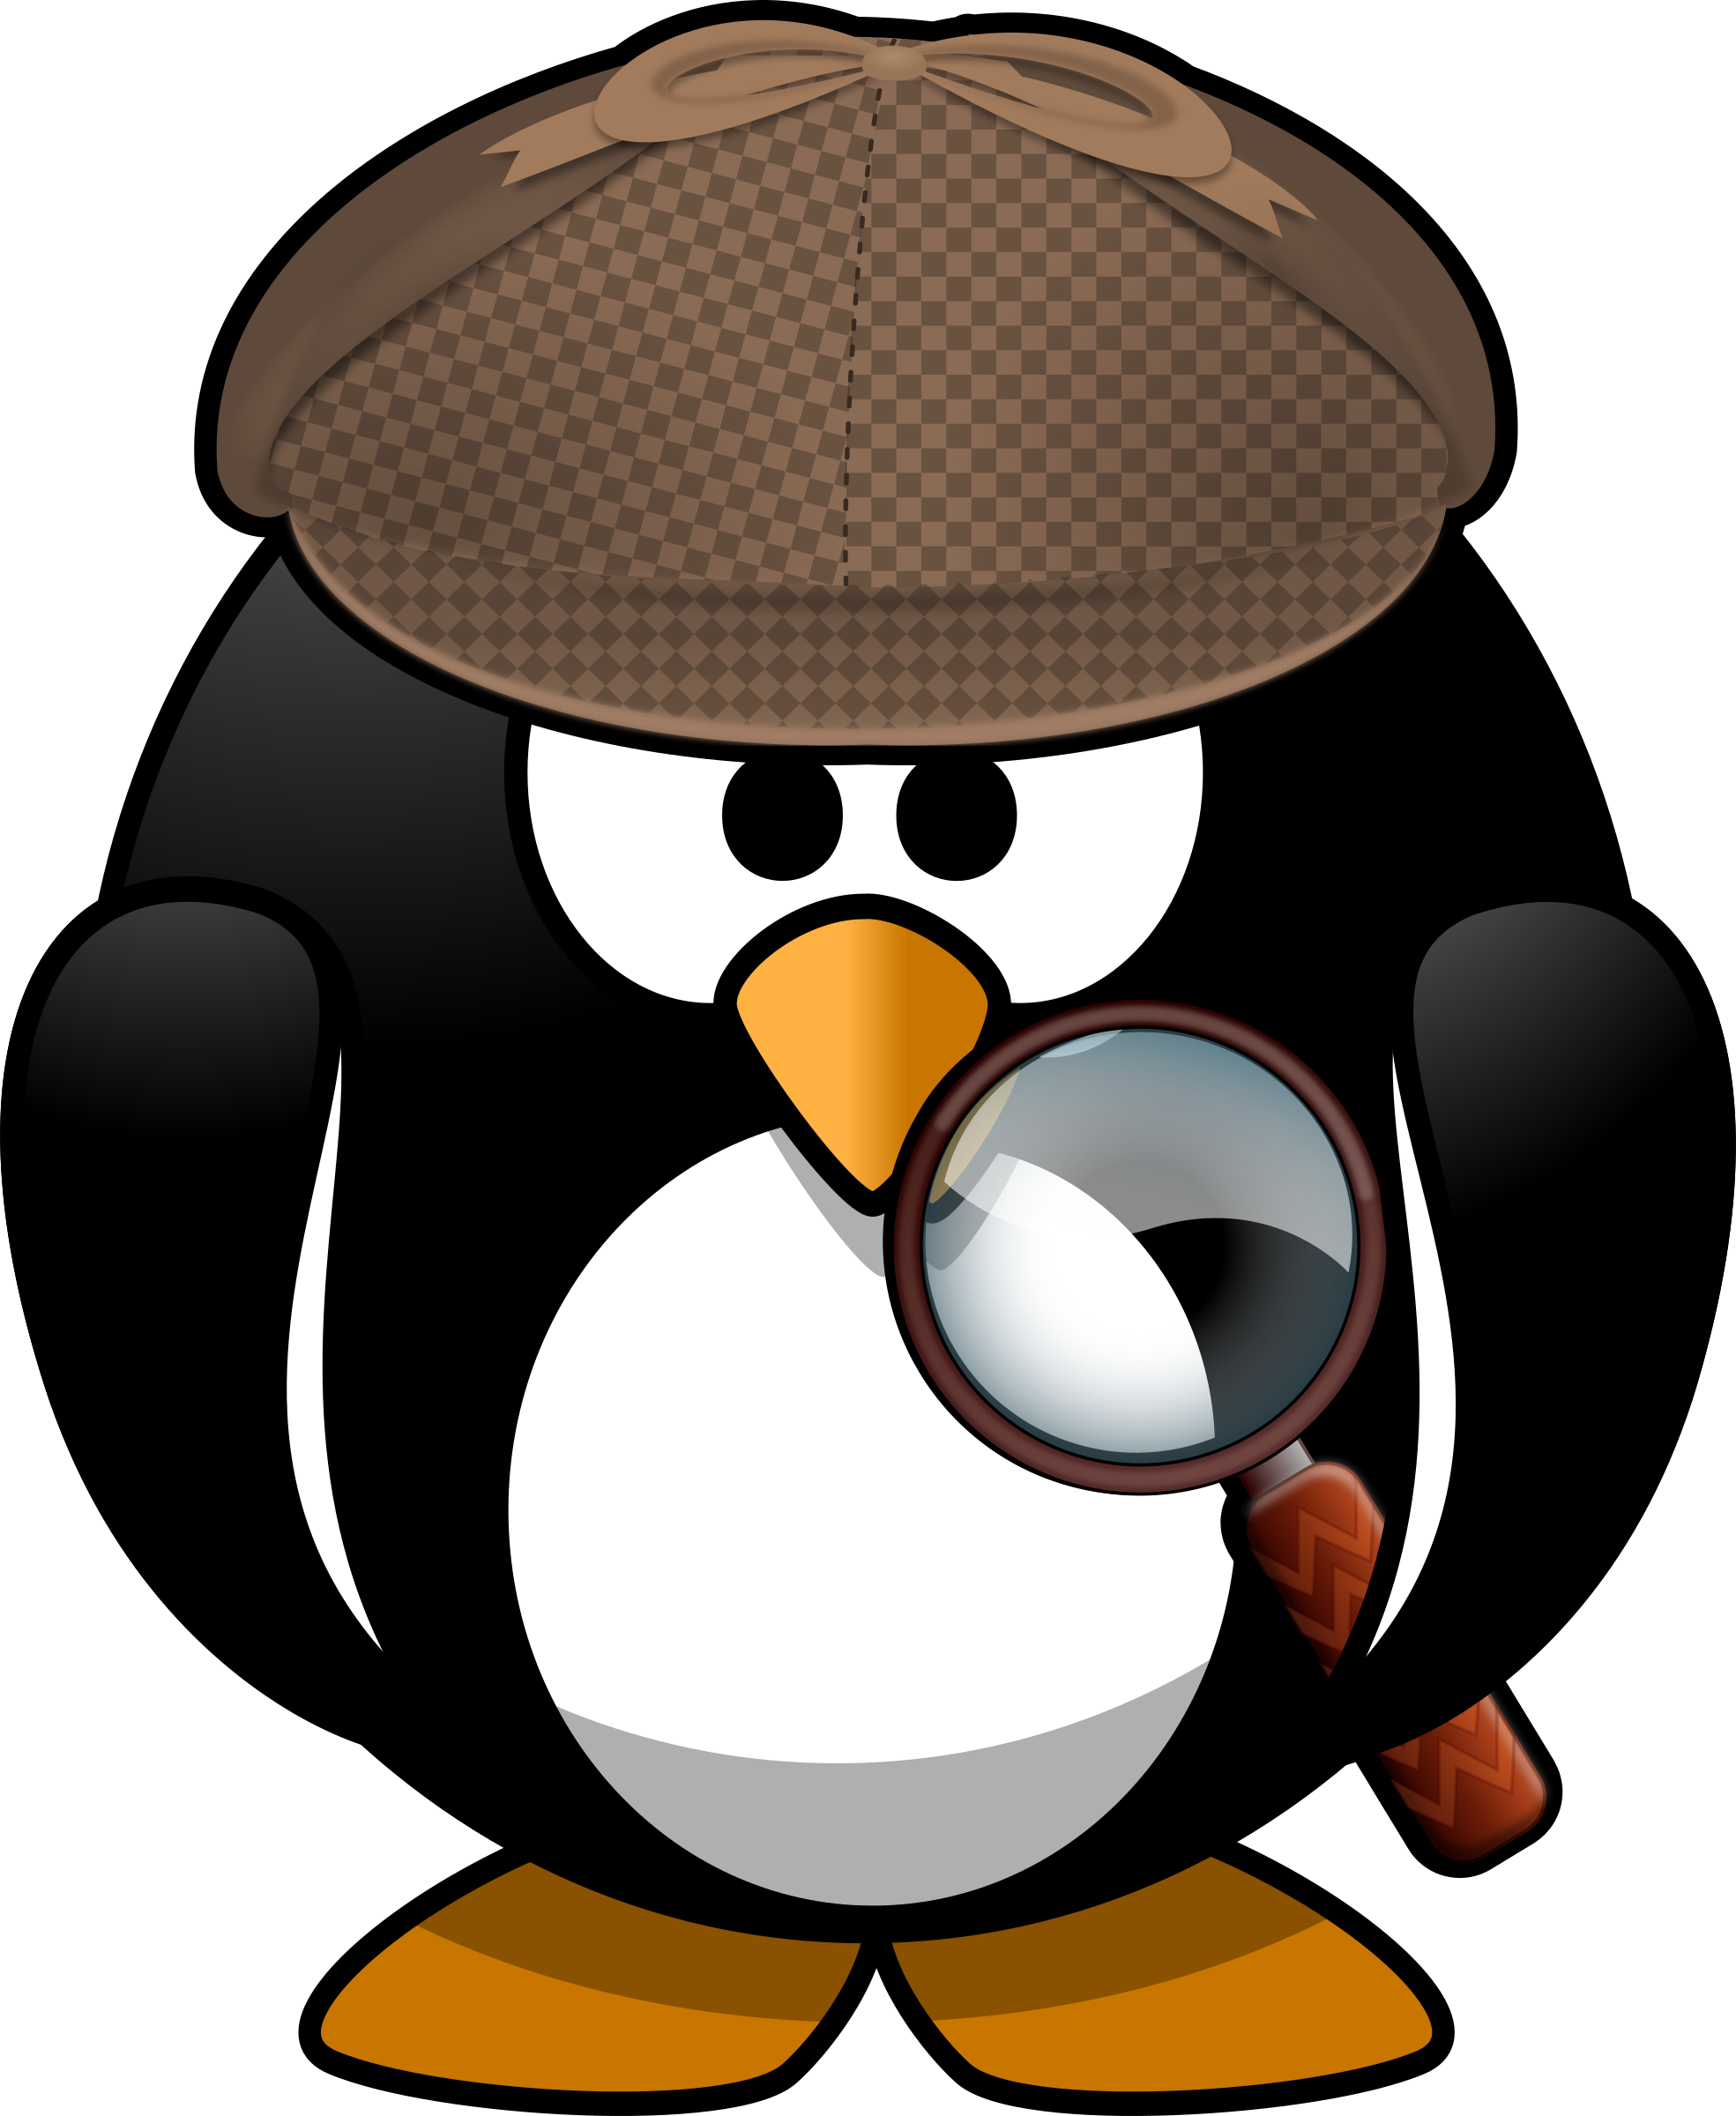 Penguin clip art artistic. Sleuth icons png free